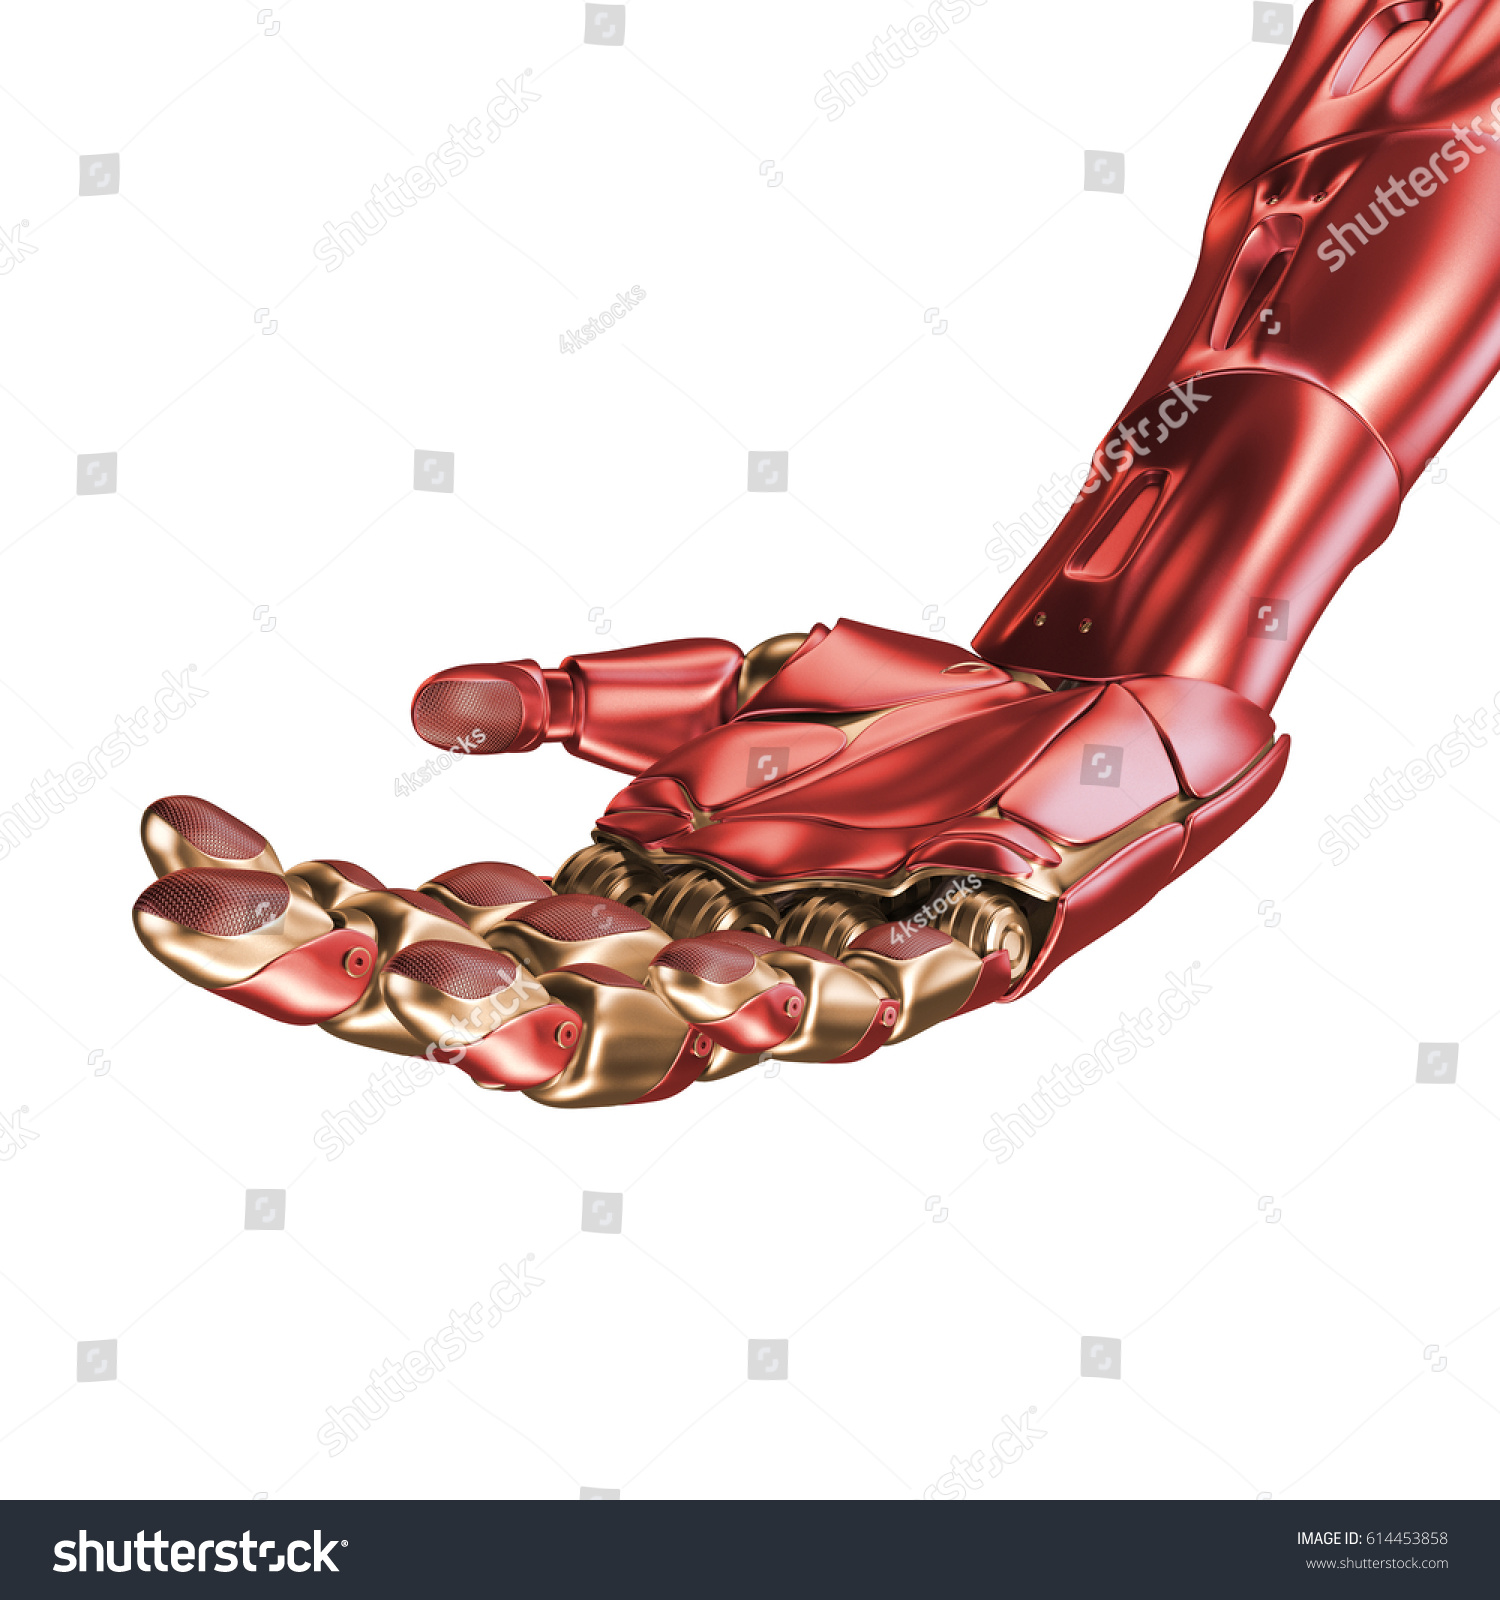 The Hand Of An Iron Man. Red And Gold Coloring. 3d Rendering. Template